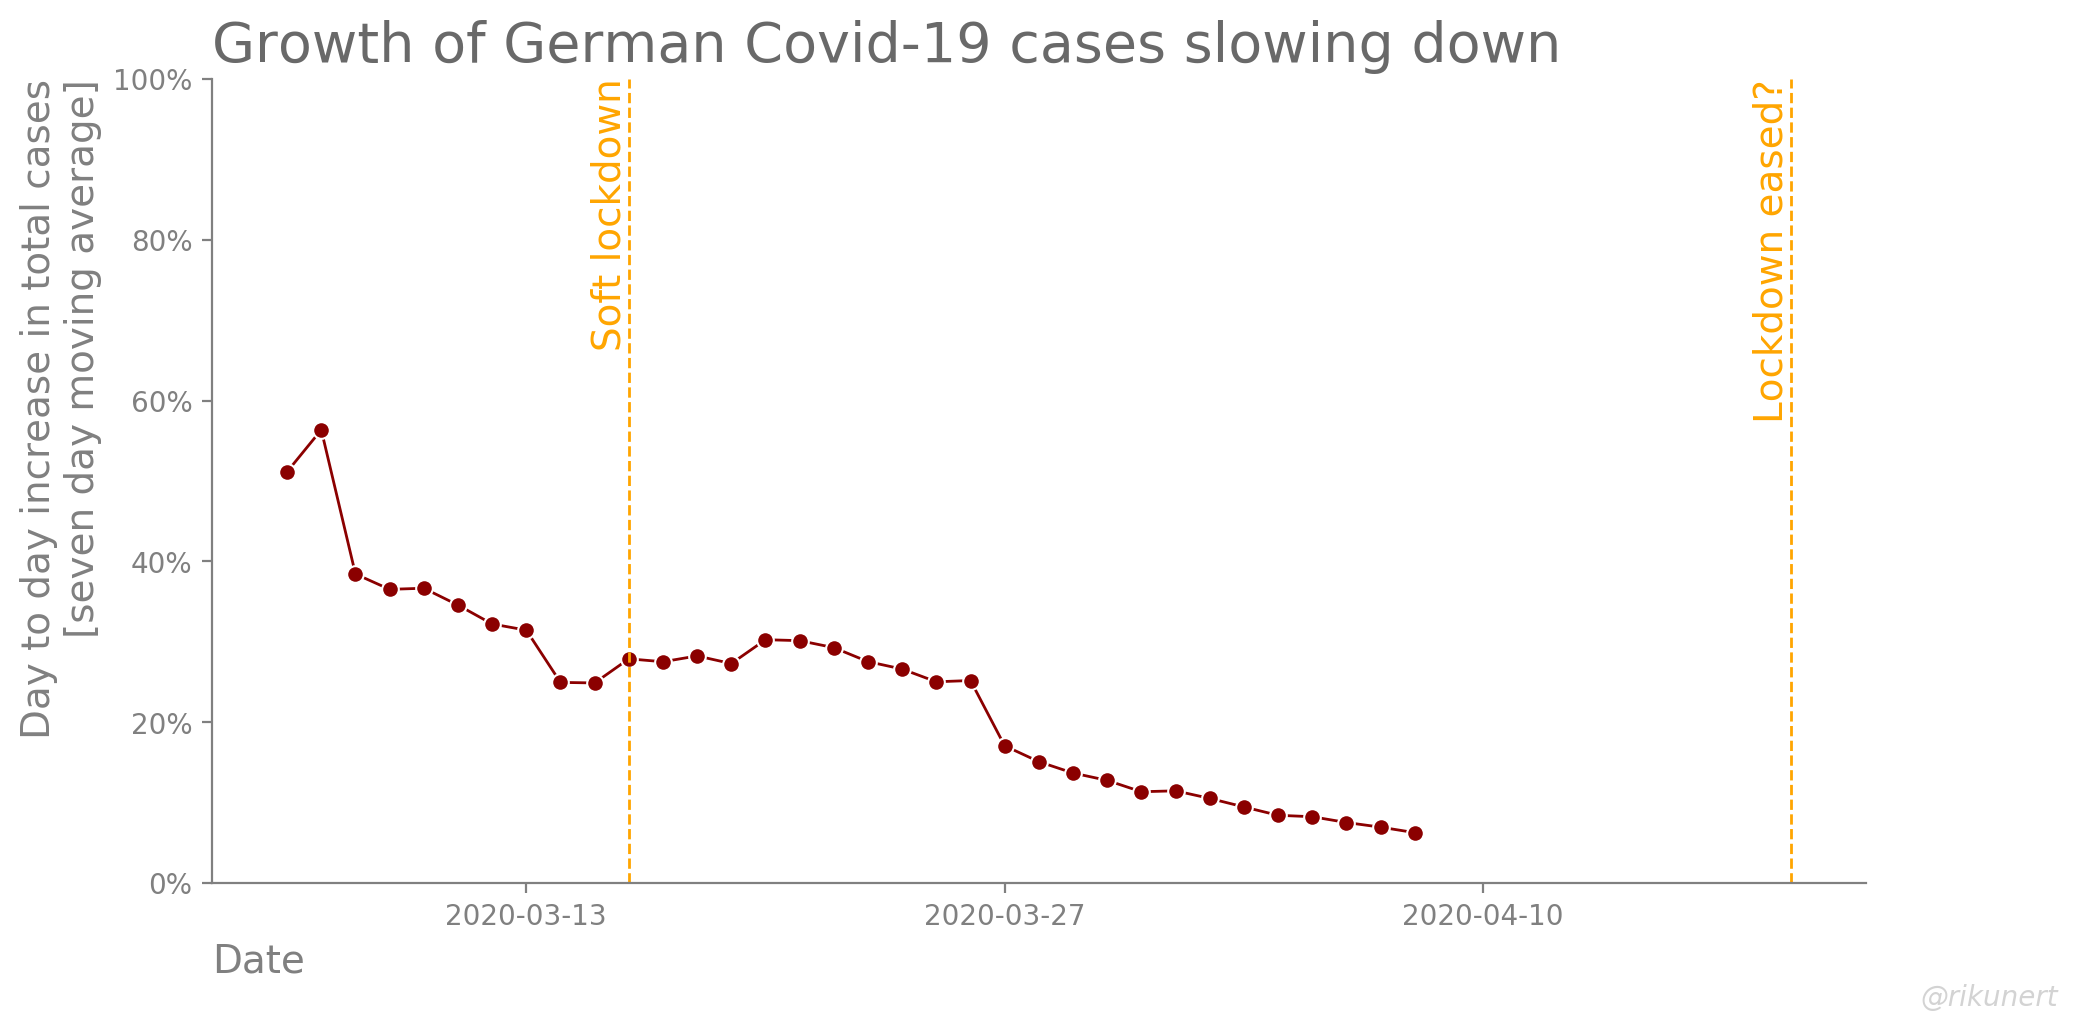 Day to day increase in total Covid-19 cases in Germany